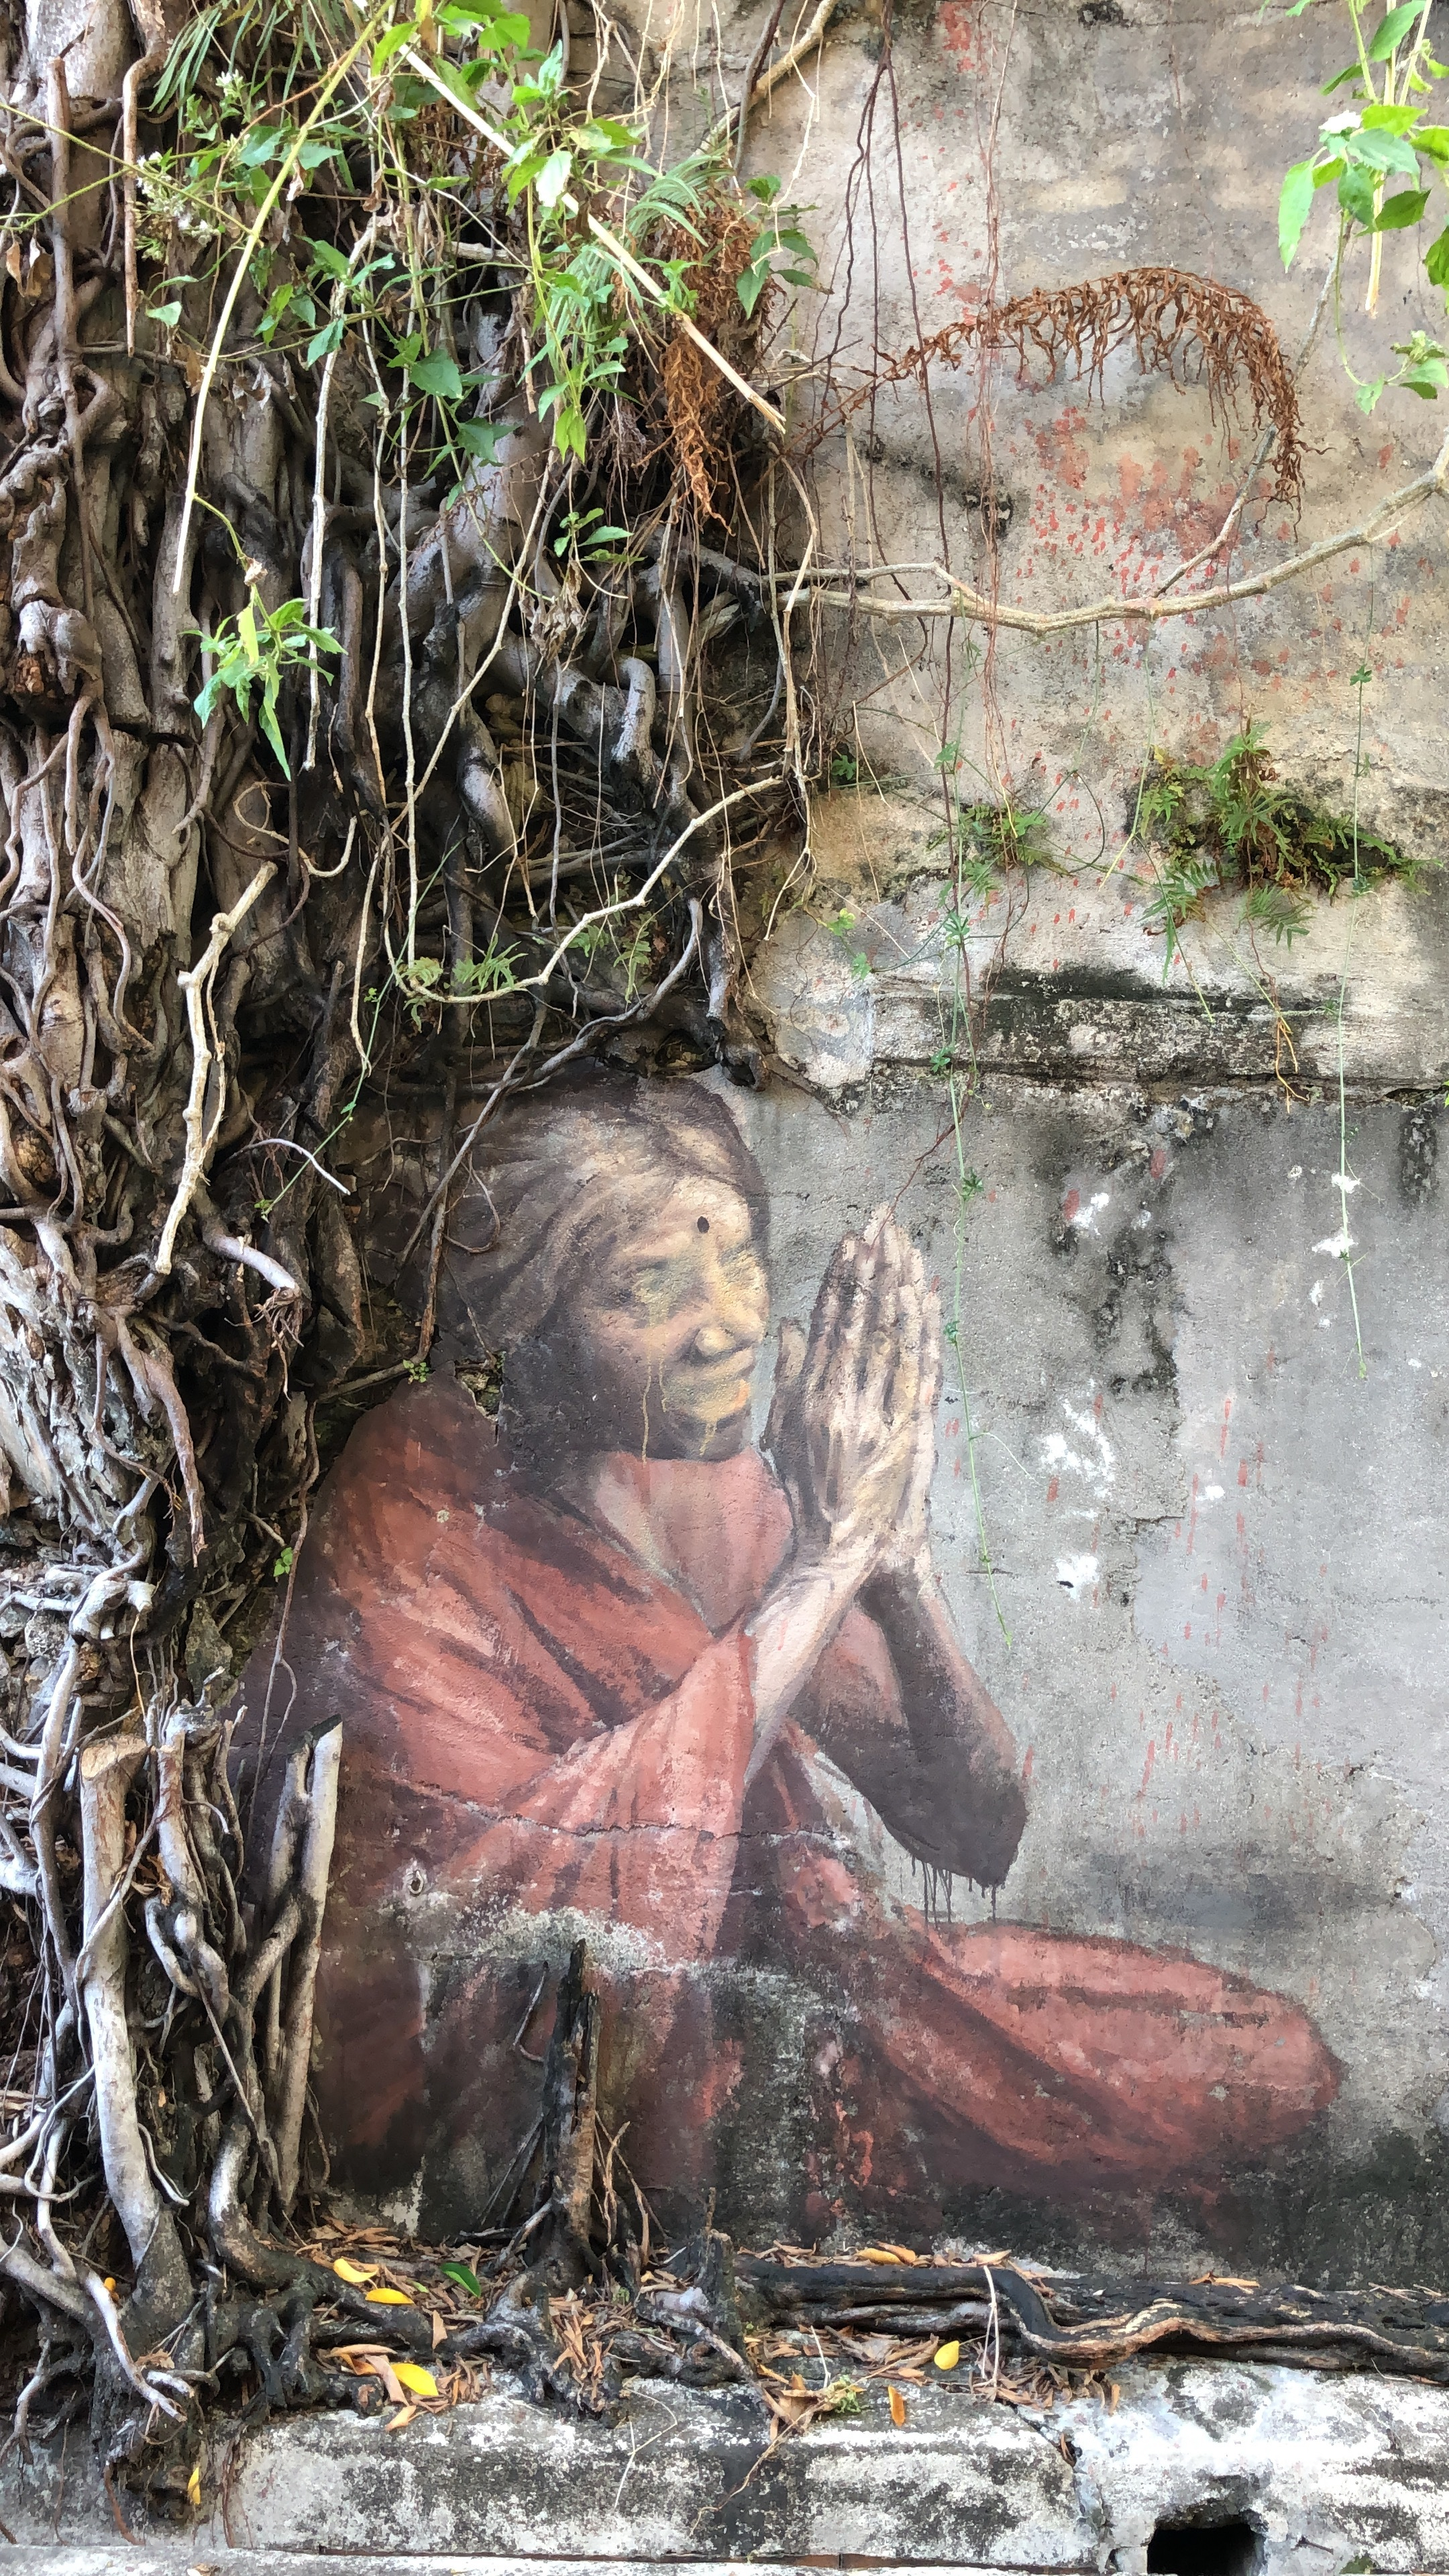 A woman praying, one of the more hidden murals I was able to encounter.